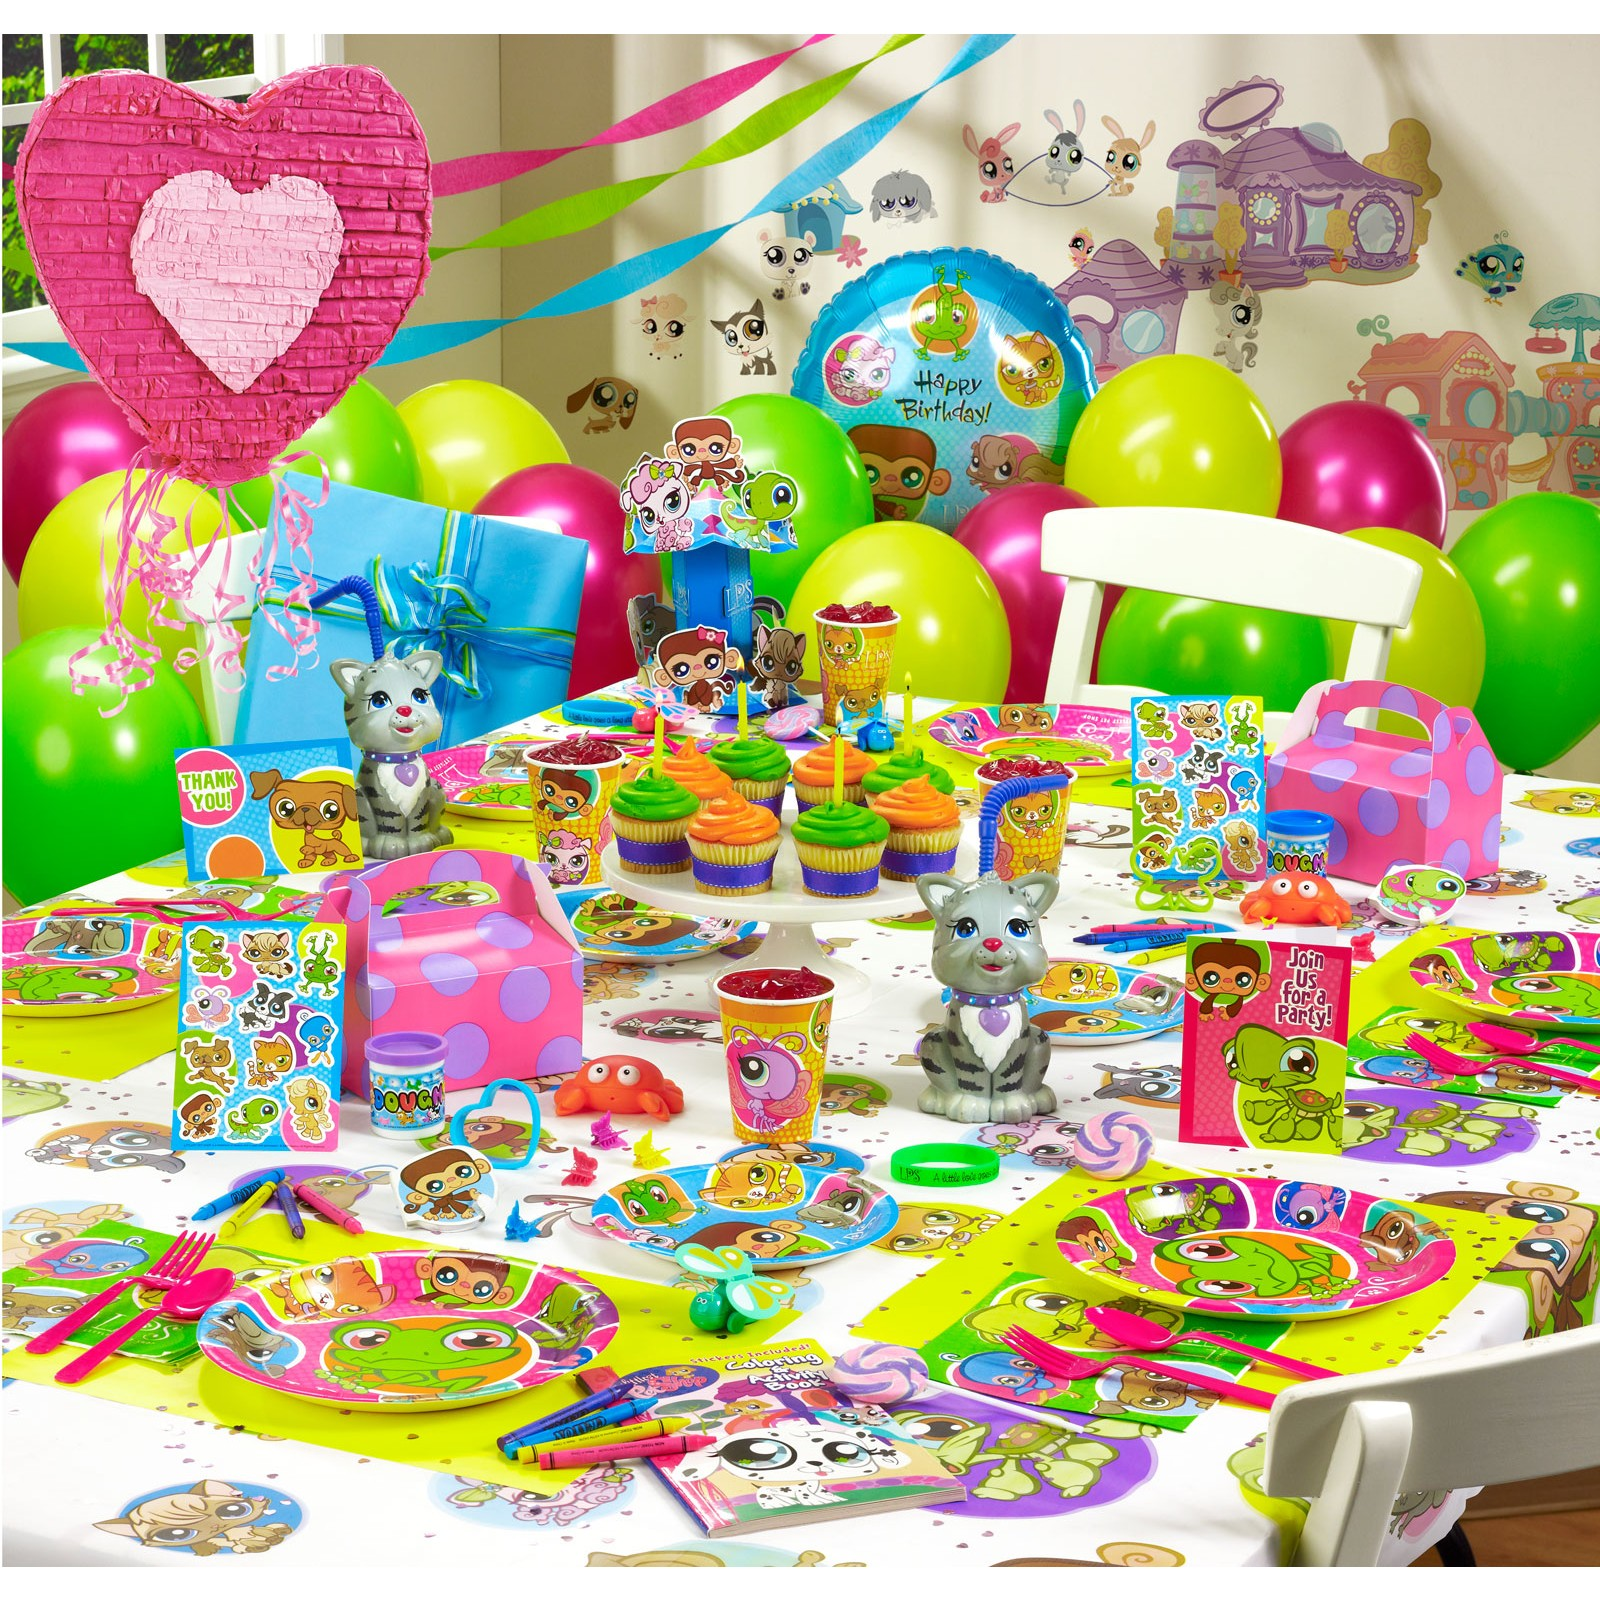 ideas de decoración de fiestas infantiles de Littlest Pet Shop